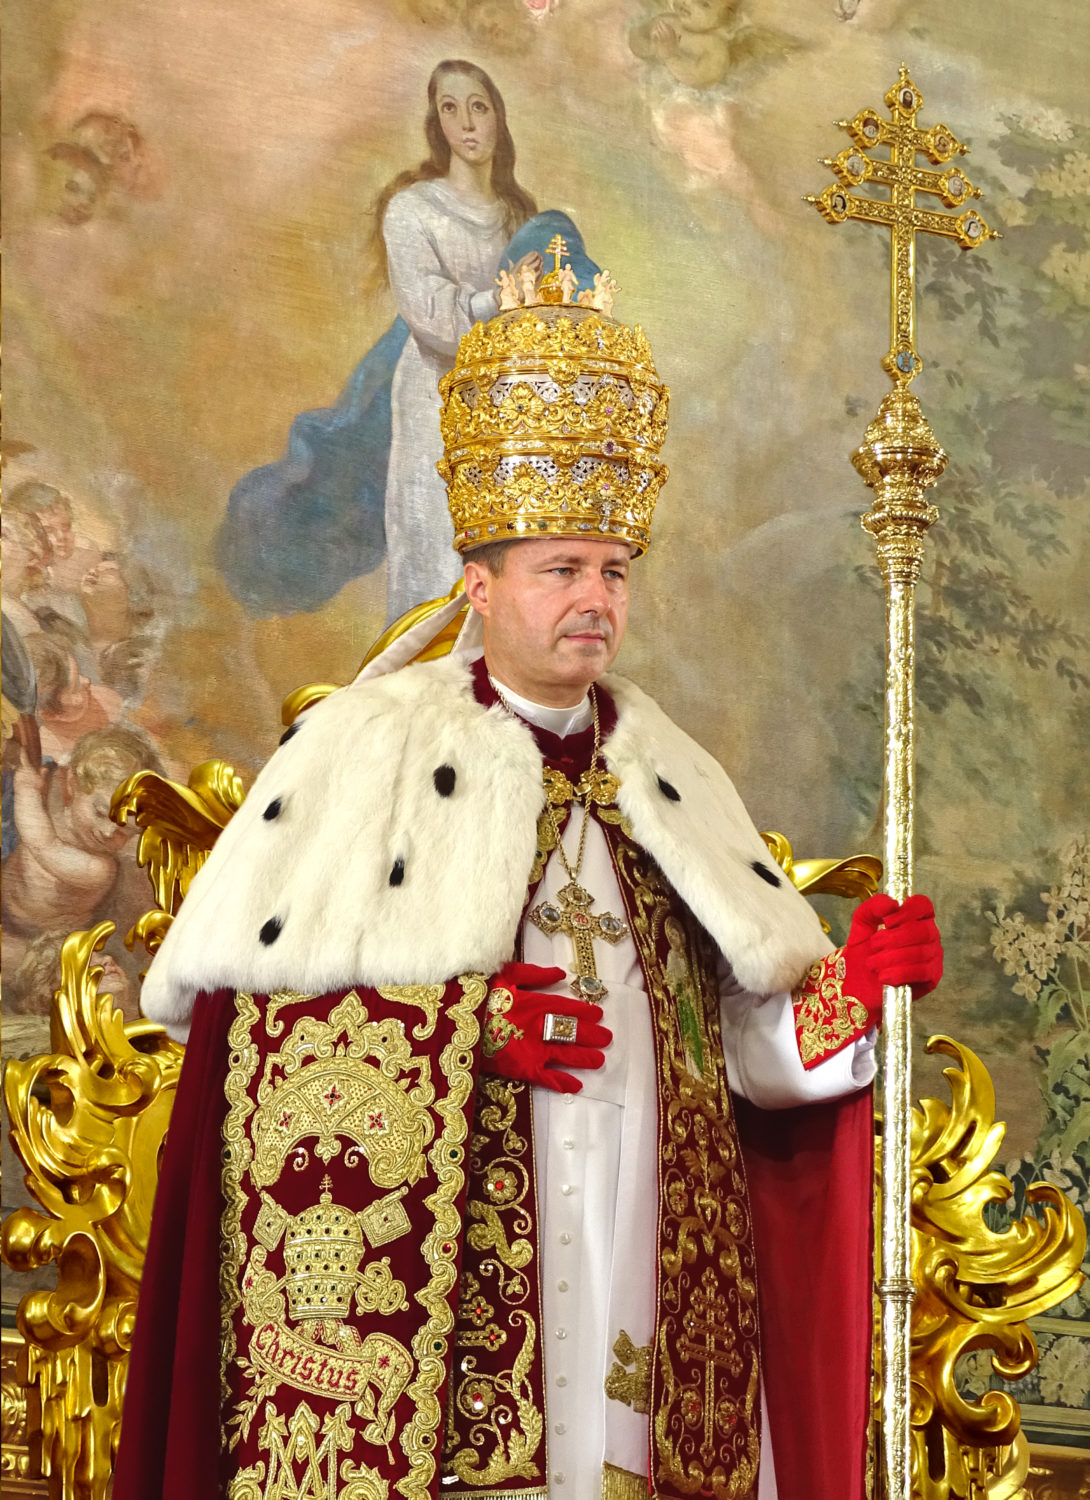 "<a href=""https://www.palmarianchurch.org/his-holiness-pope-peter-iii/"" title=""His Holiness Pope Peter III"">His Holiness Pope Peter III, <br><i> De Glória Ecclésiæ </i><br><br> Happily Reining<br><br><br> See more</a>"